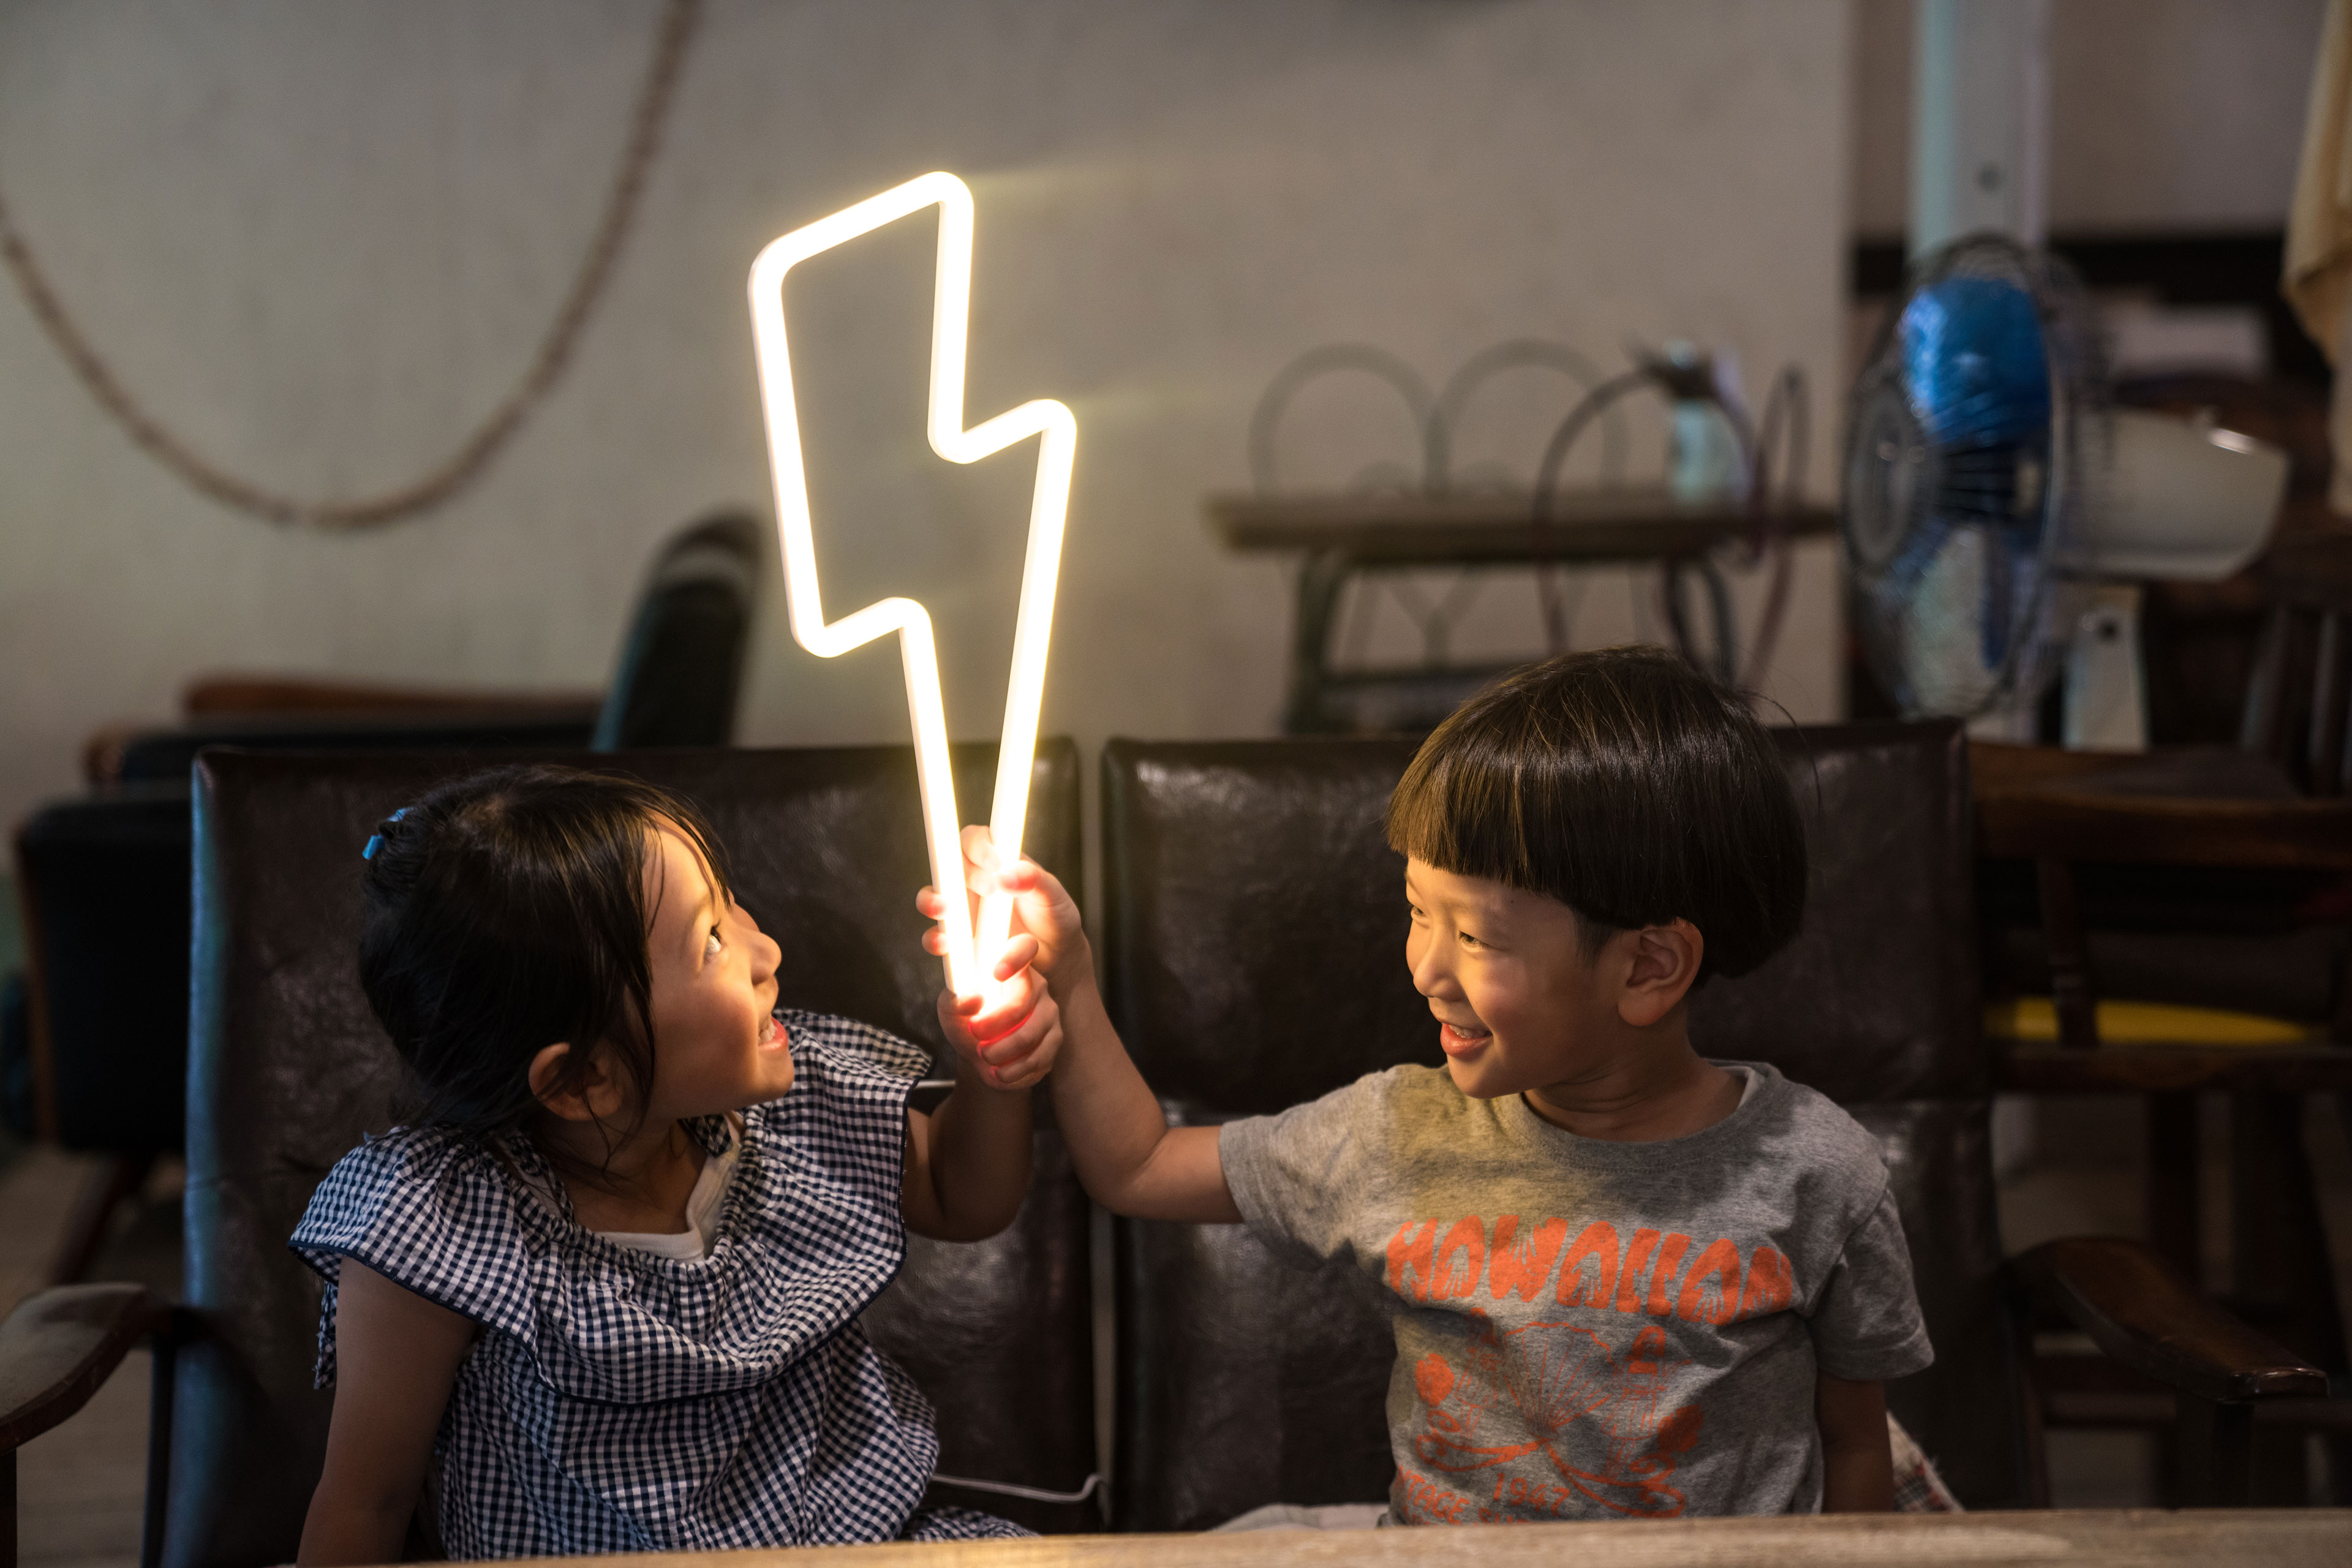 EY - Two small children with lightning bolt neon light